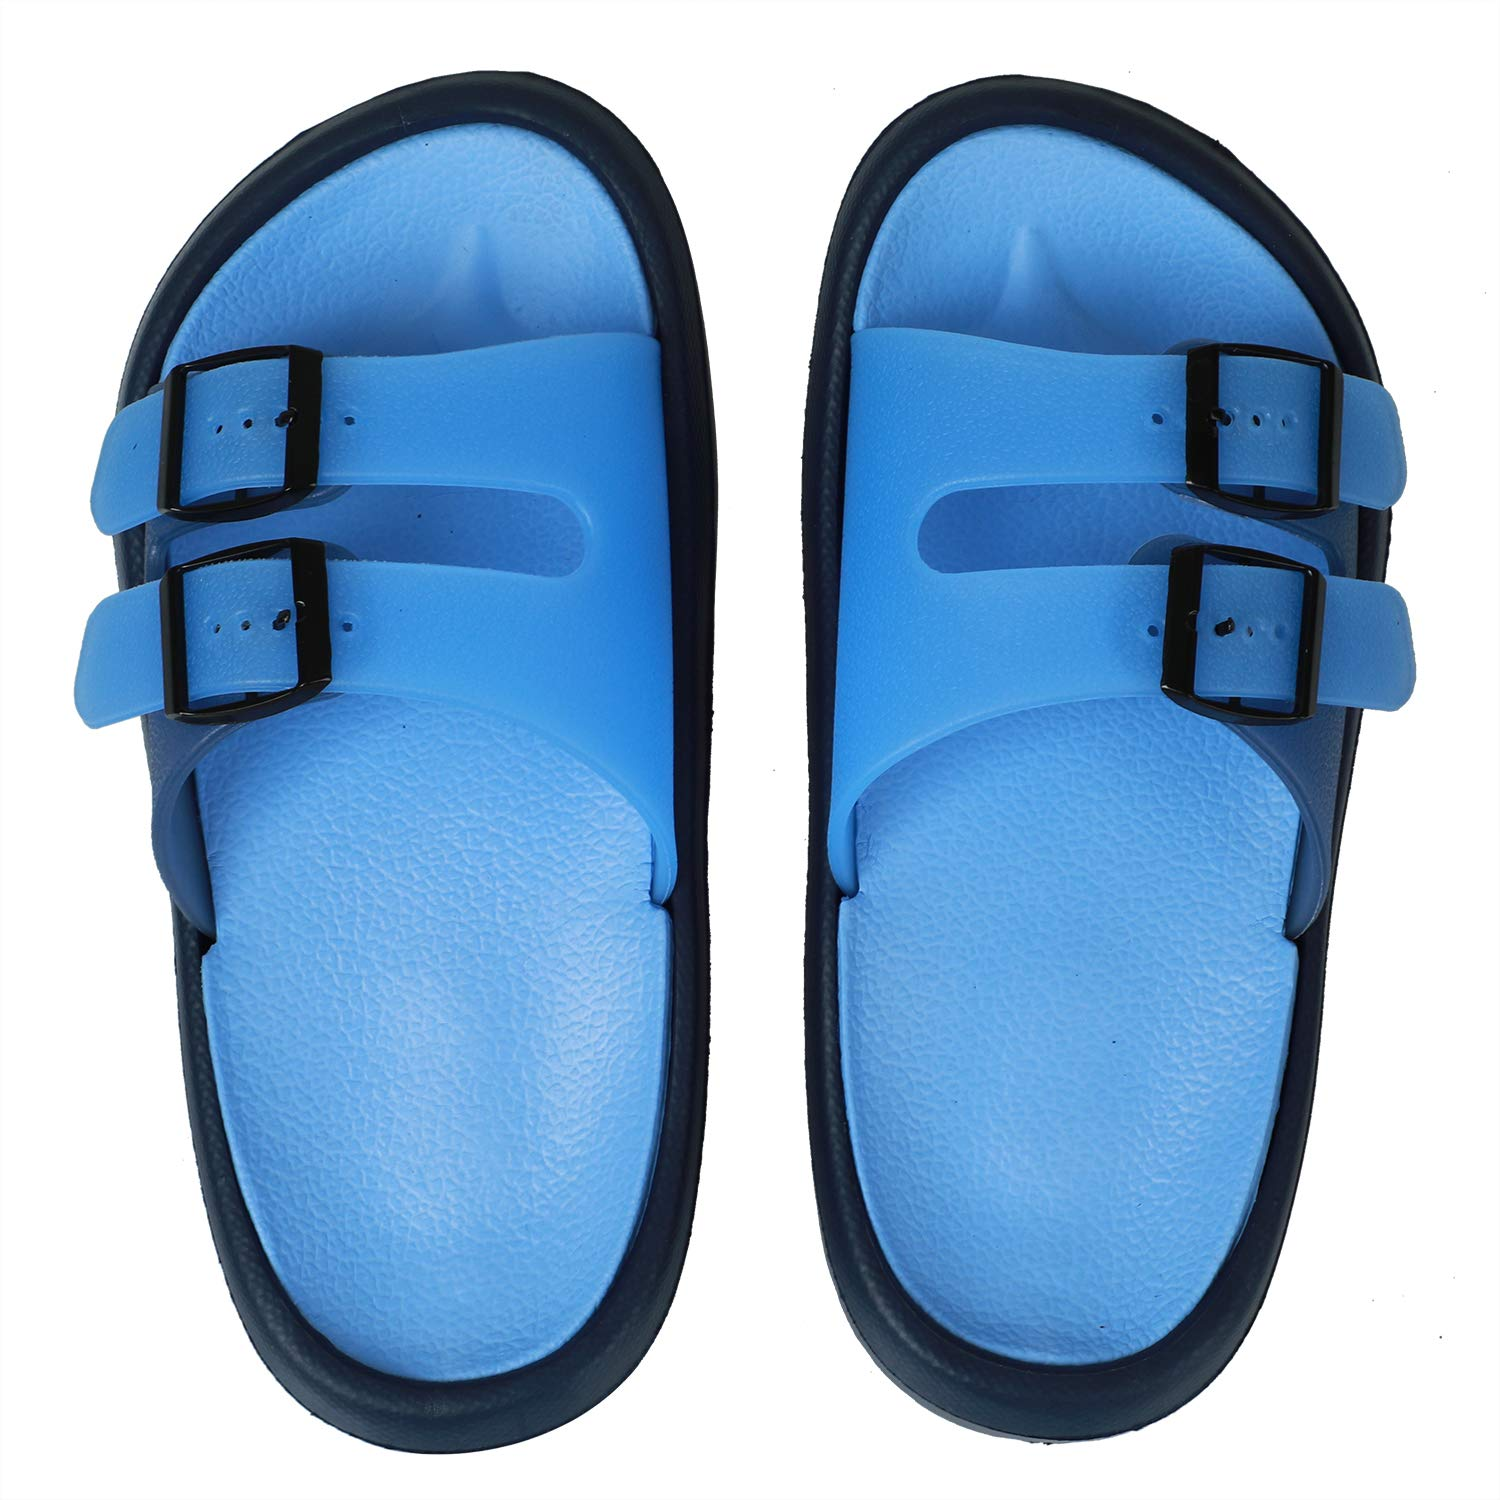 GreatCase Toddler Little Kid Walking Sandals Non-Slip Beach Shoes Lightweight Shower Pool Slippers